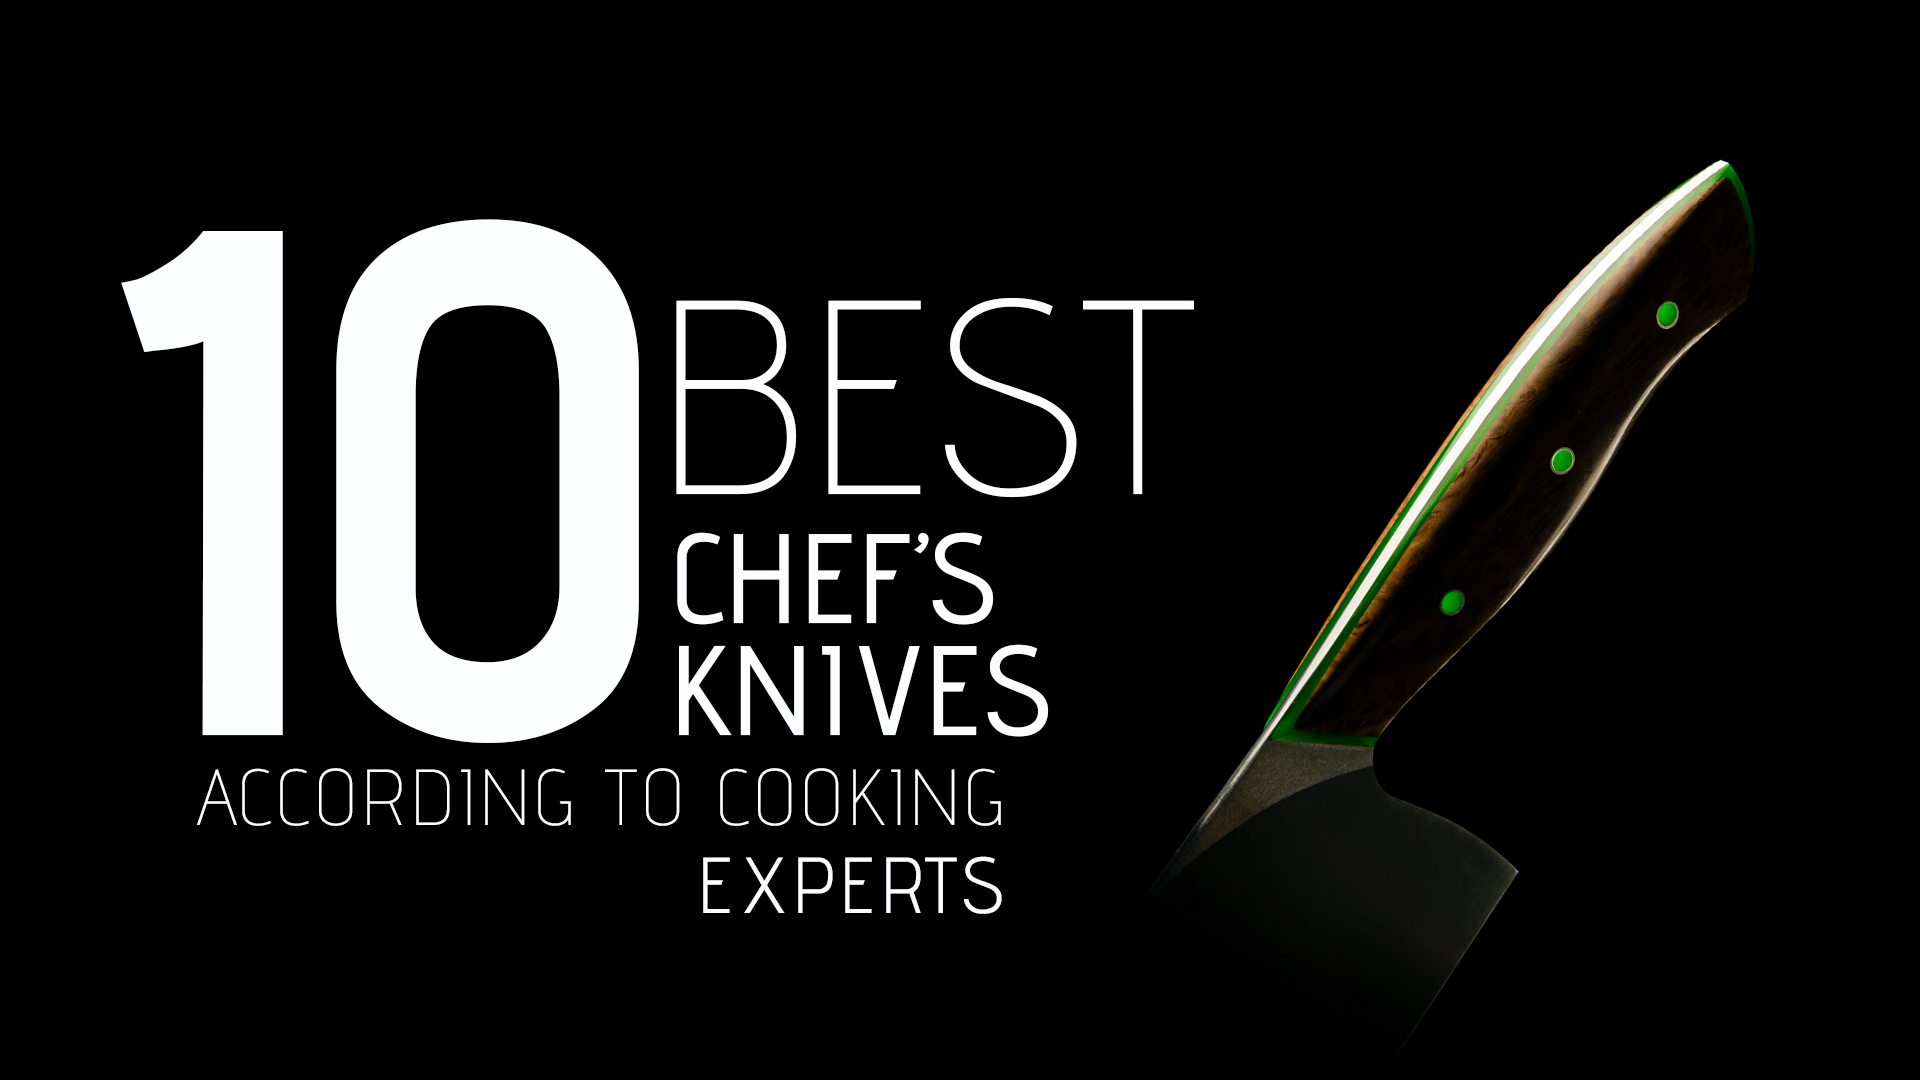 10 Best Chef's Knives, According to Cooking Experts